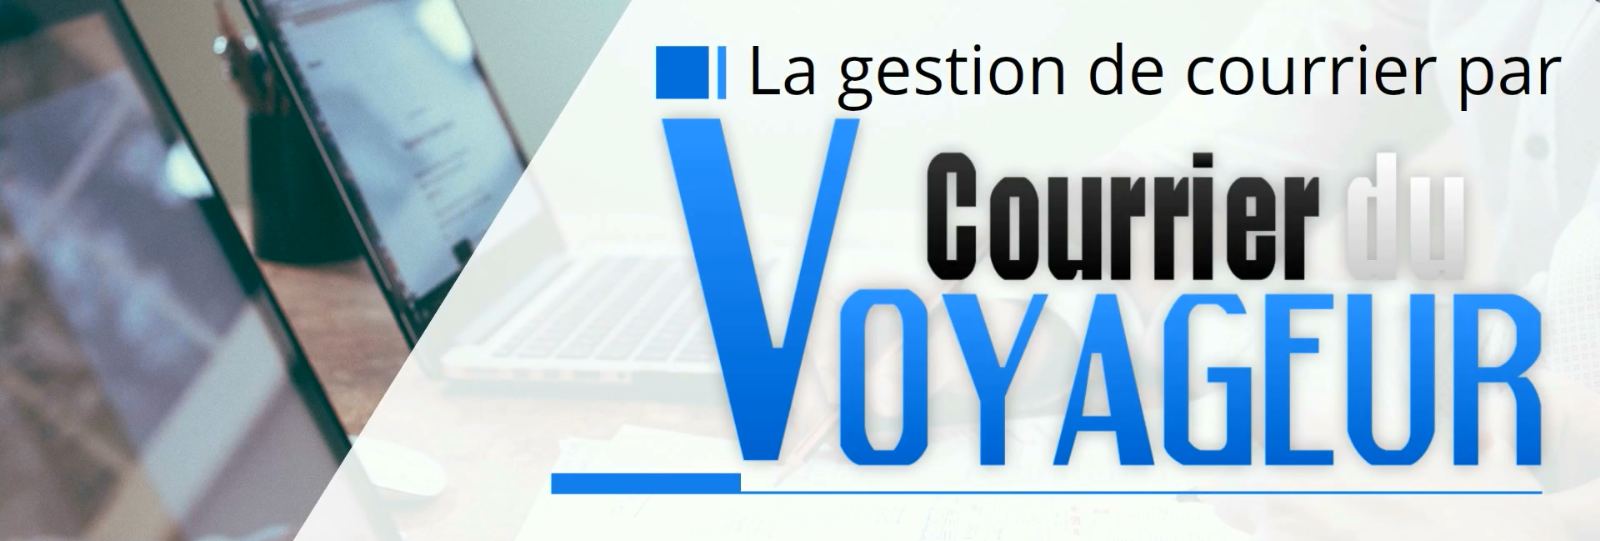 La gestion de courrier